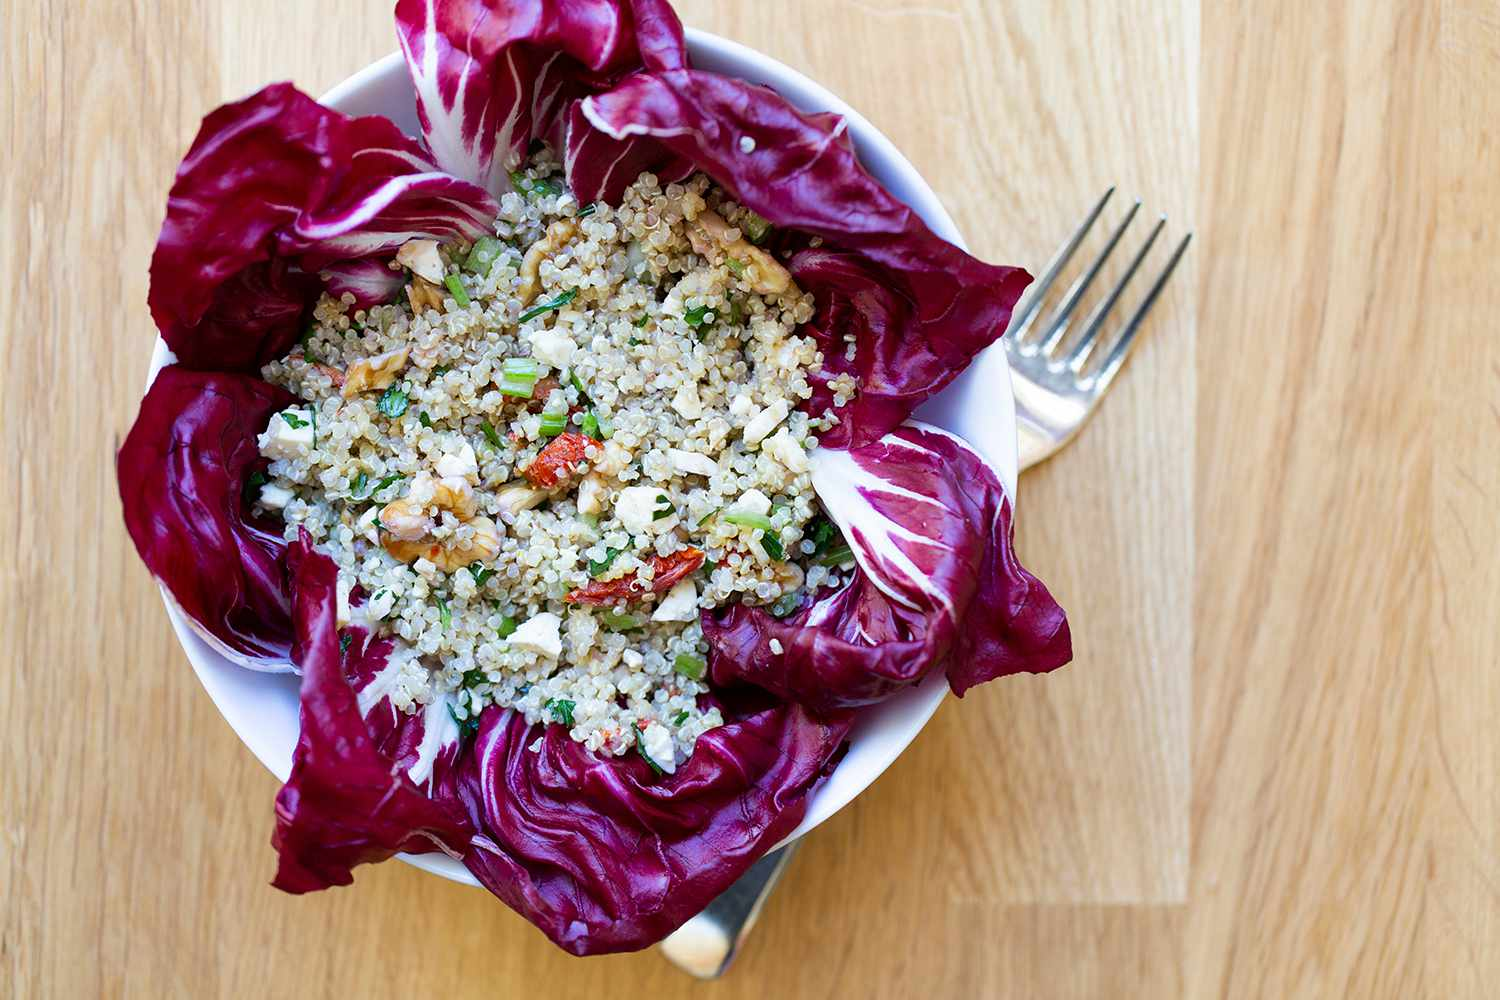 A lunch salad of quinoa, radicchio, walnuts, celery, parsley and tomatoes.